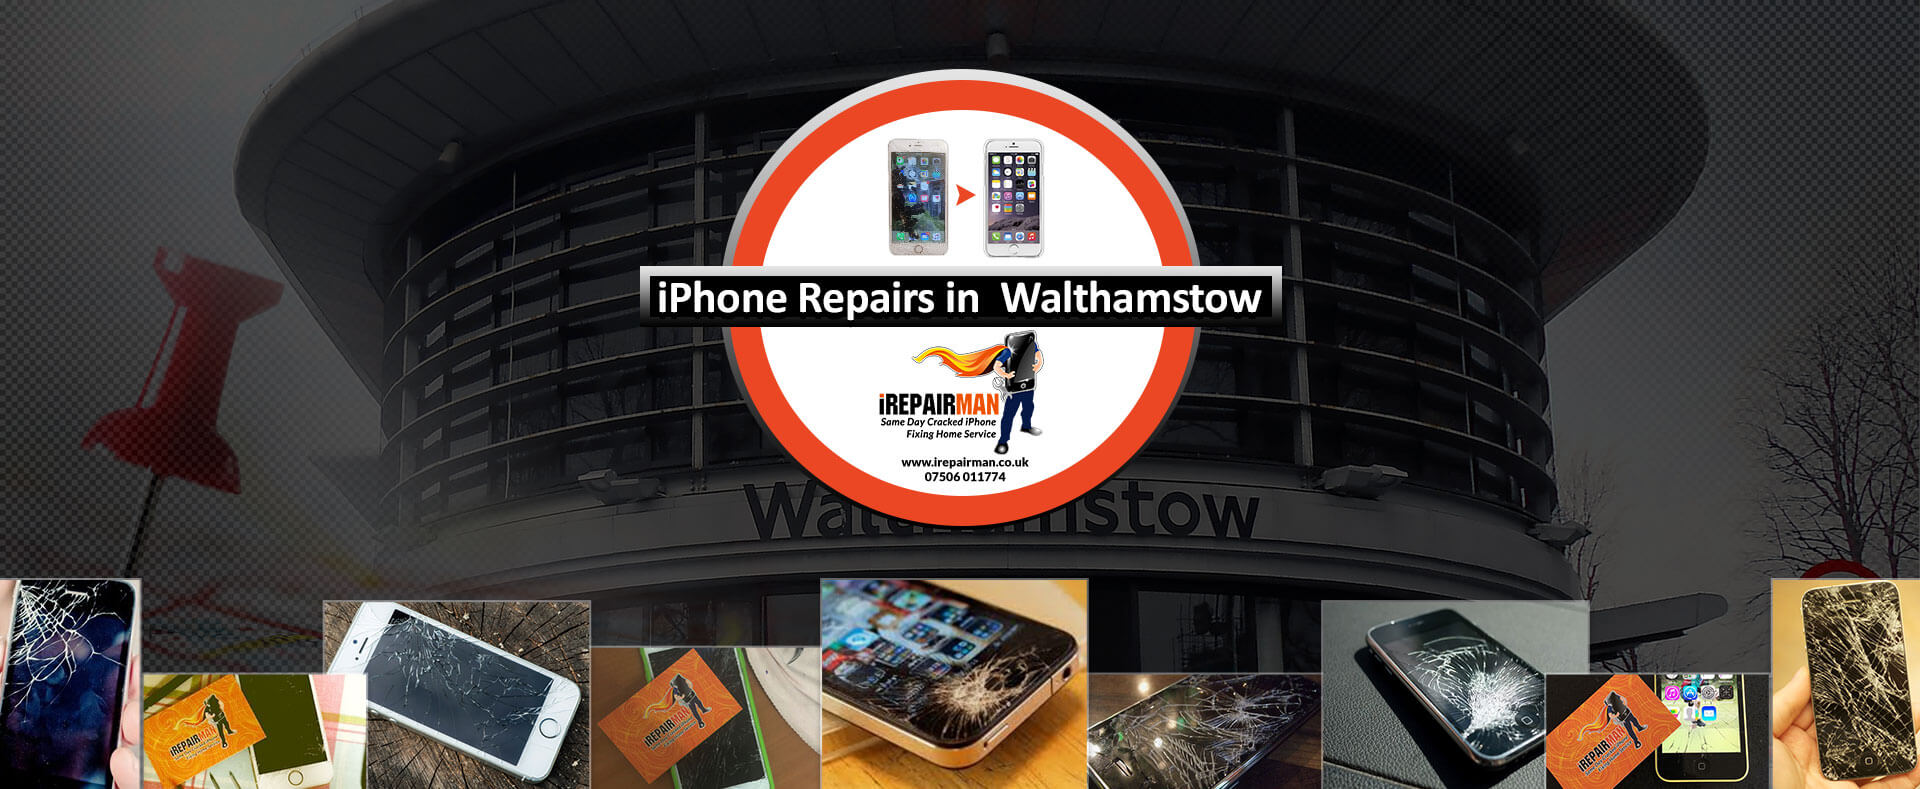 iPhone Repairs in Walthamstow